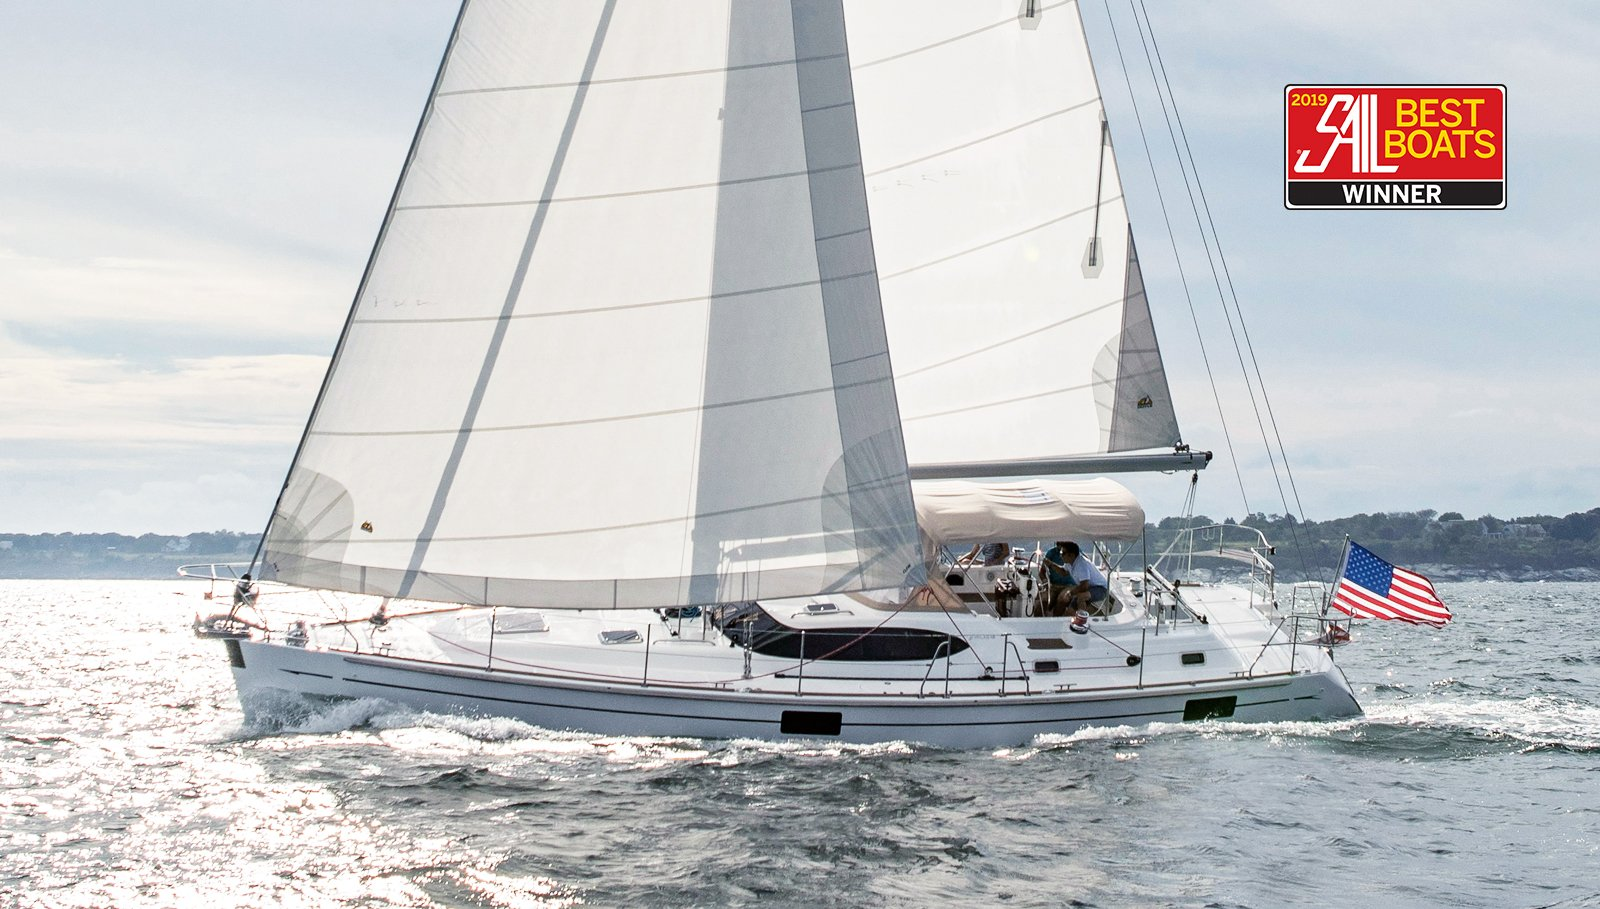 Sail - Best Boats 2019 - Systems Award for Hylas 48